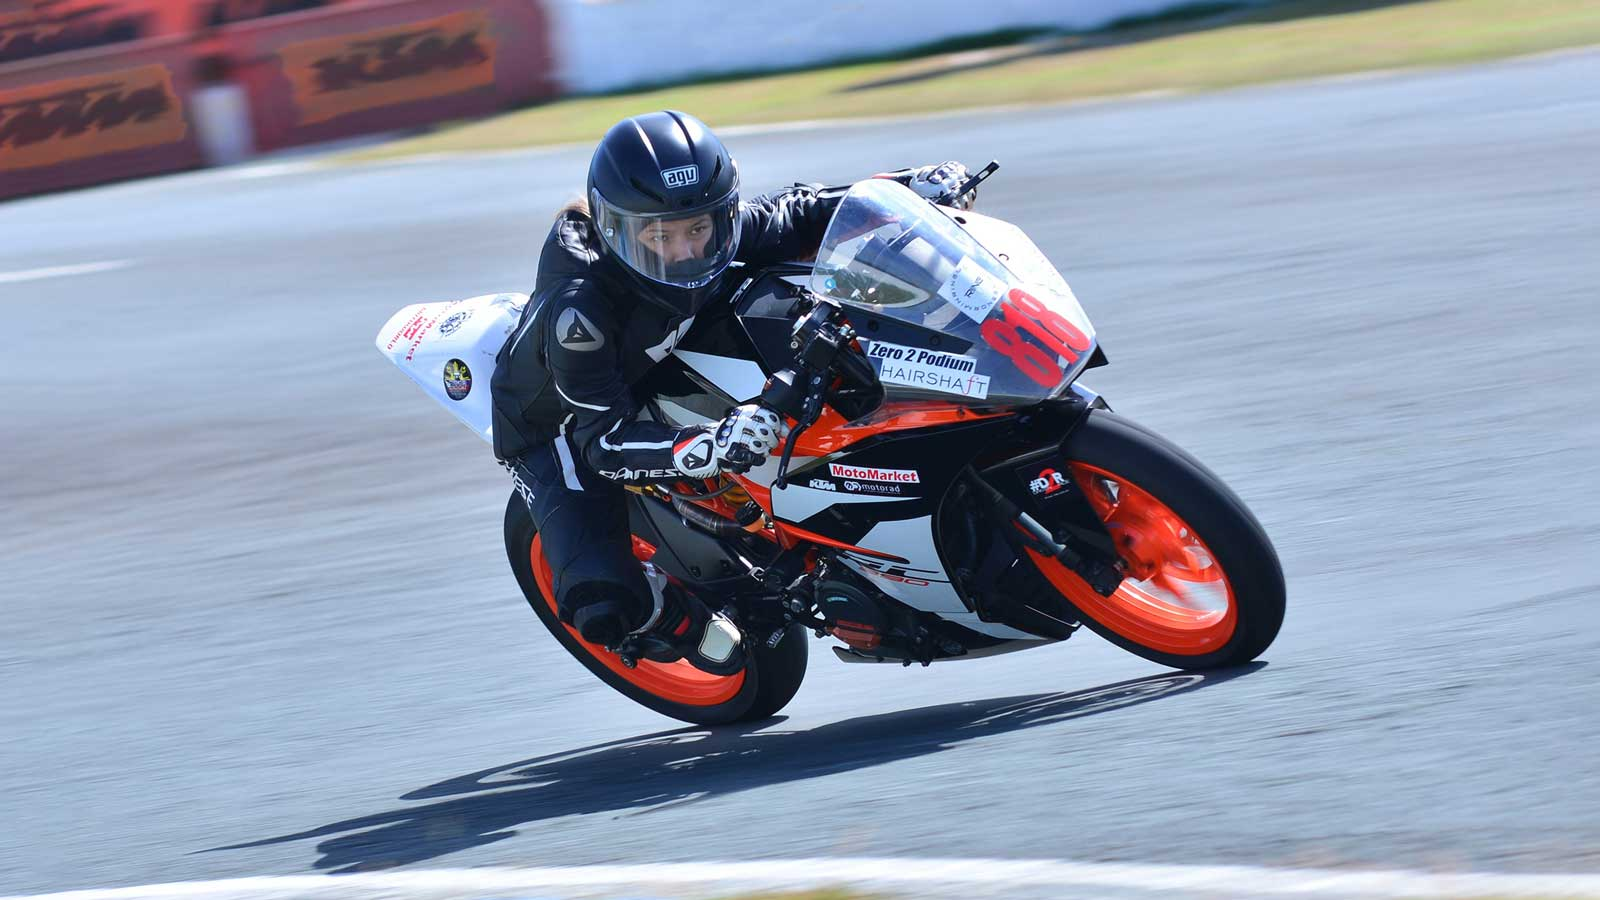 Motorcycle riders get to experience racing